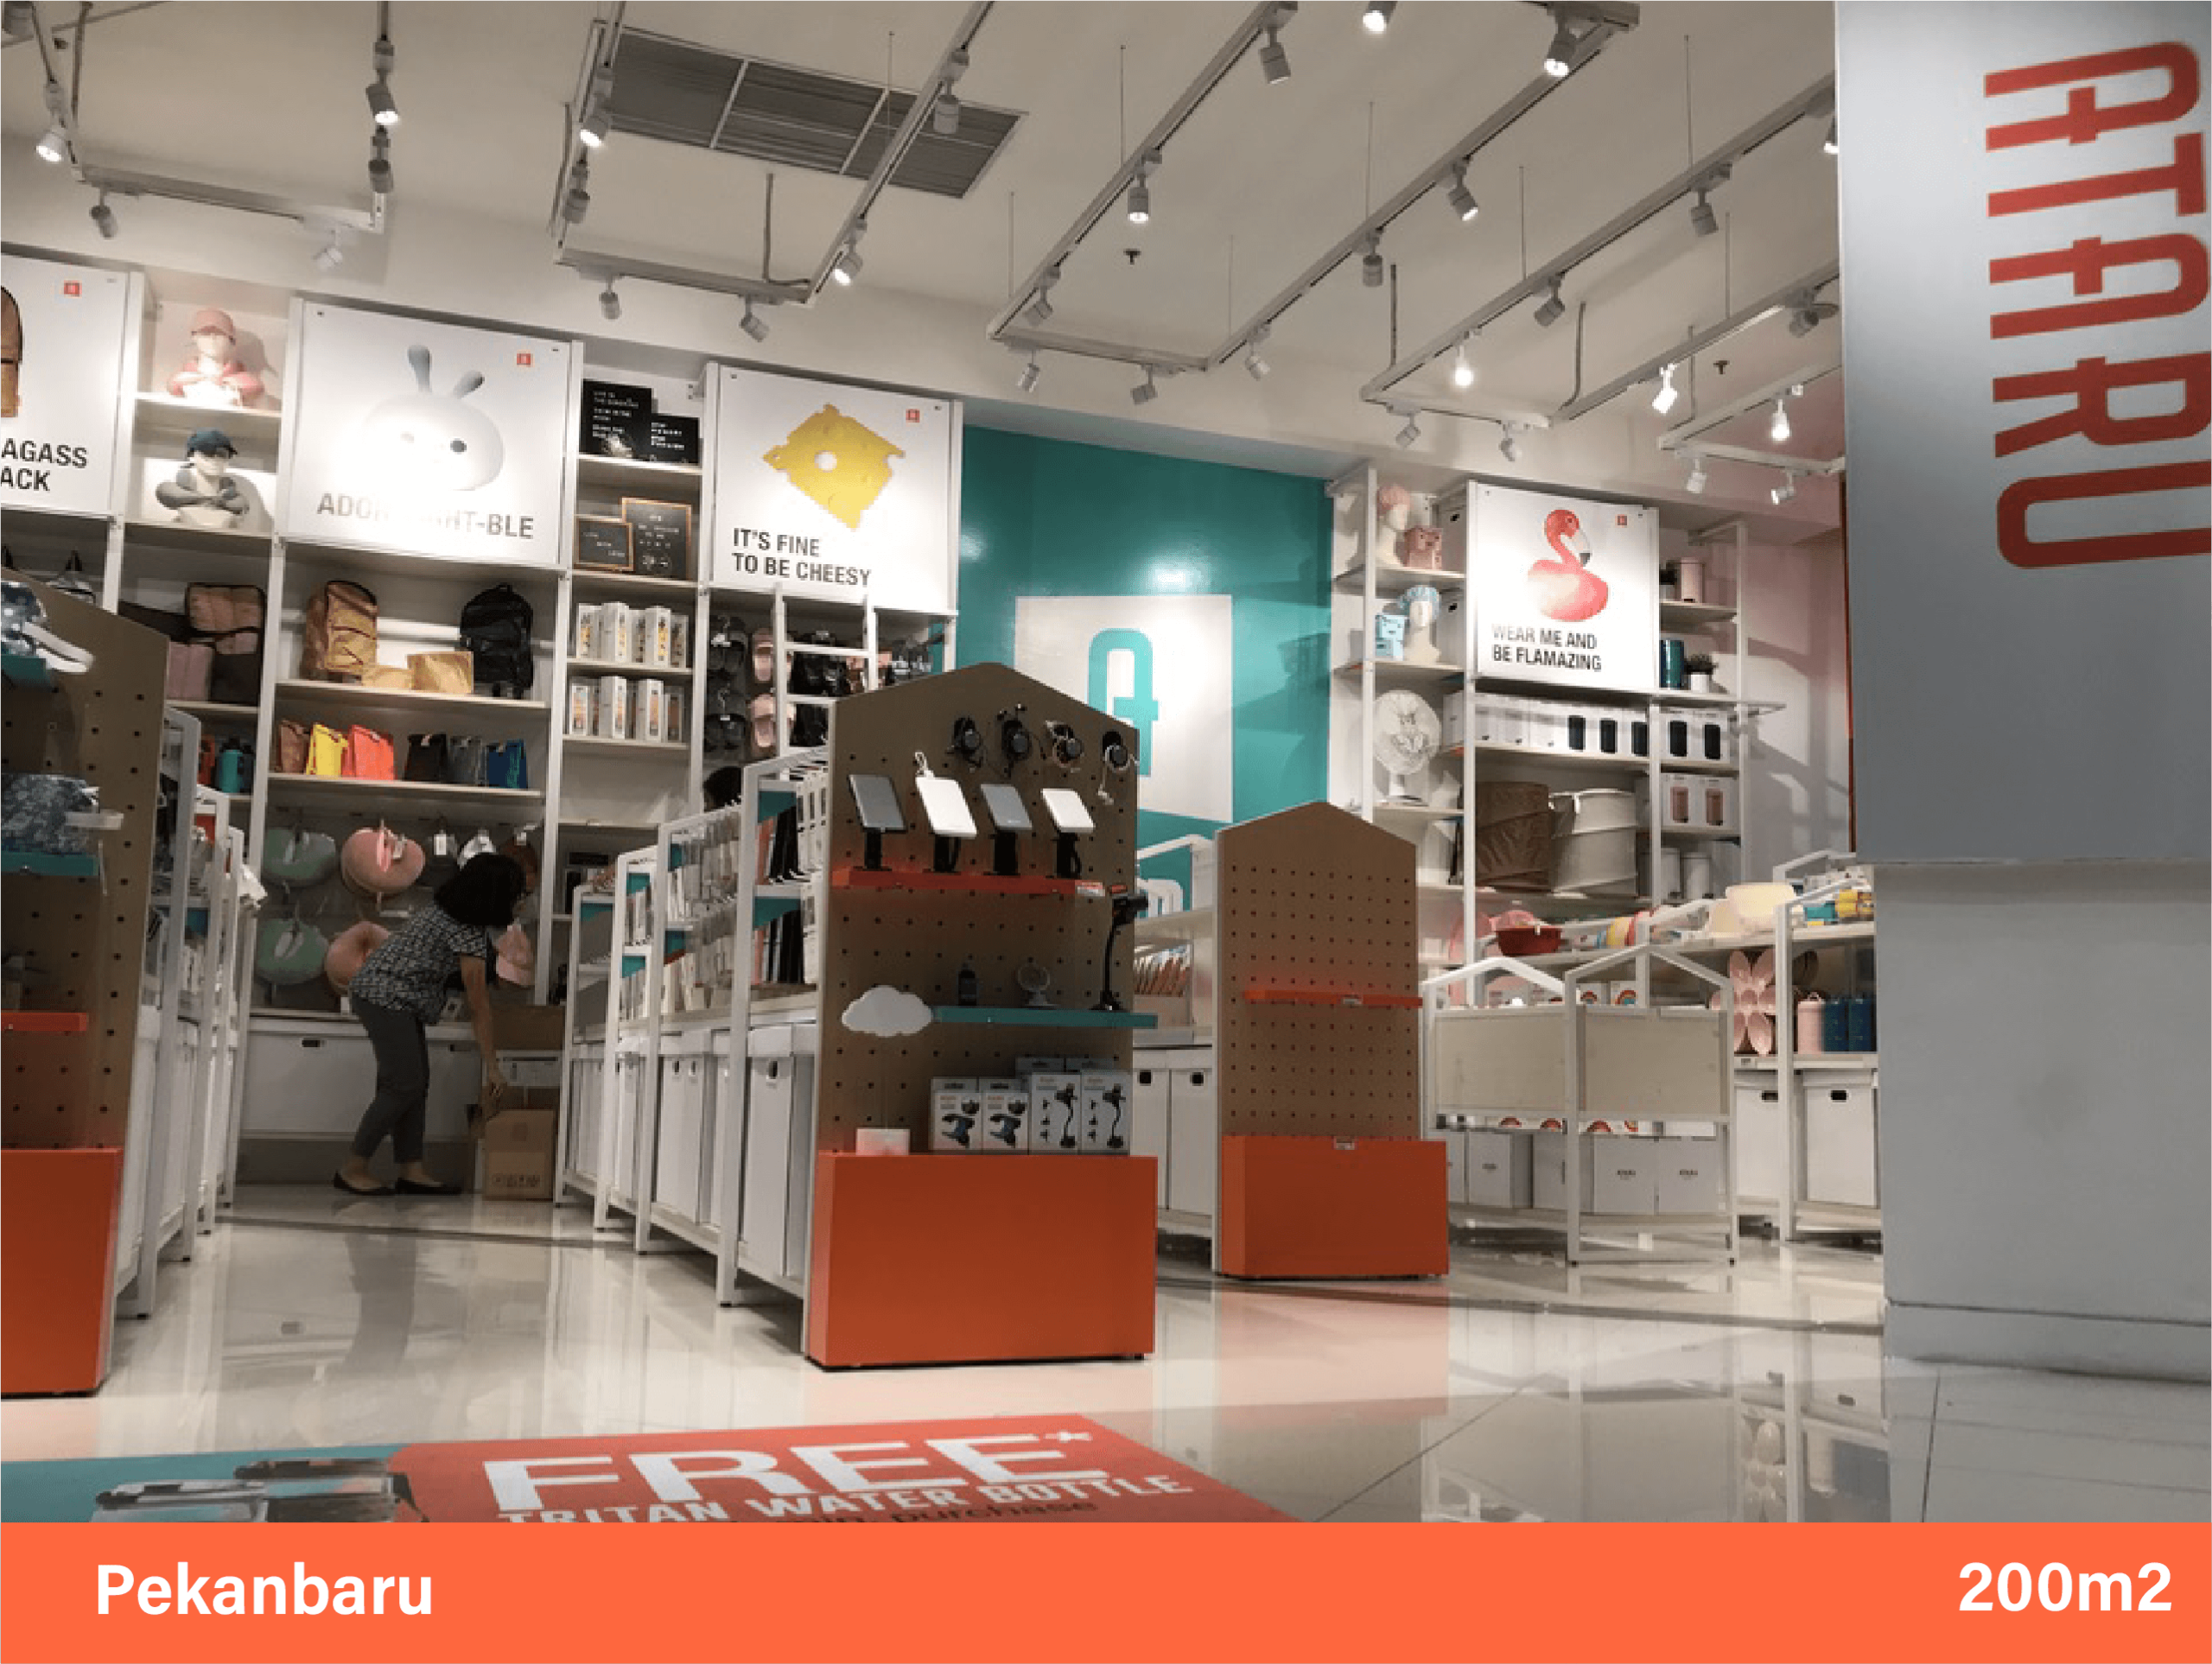 Ataru entrance aisle view of products and brands